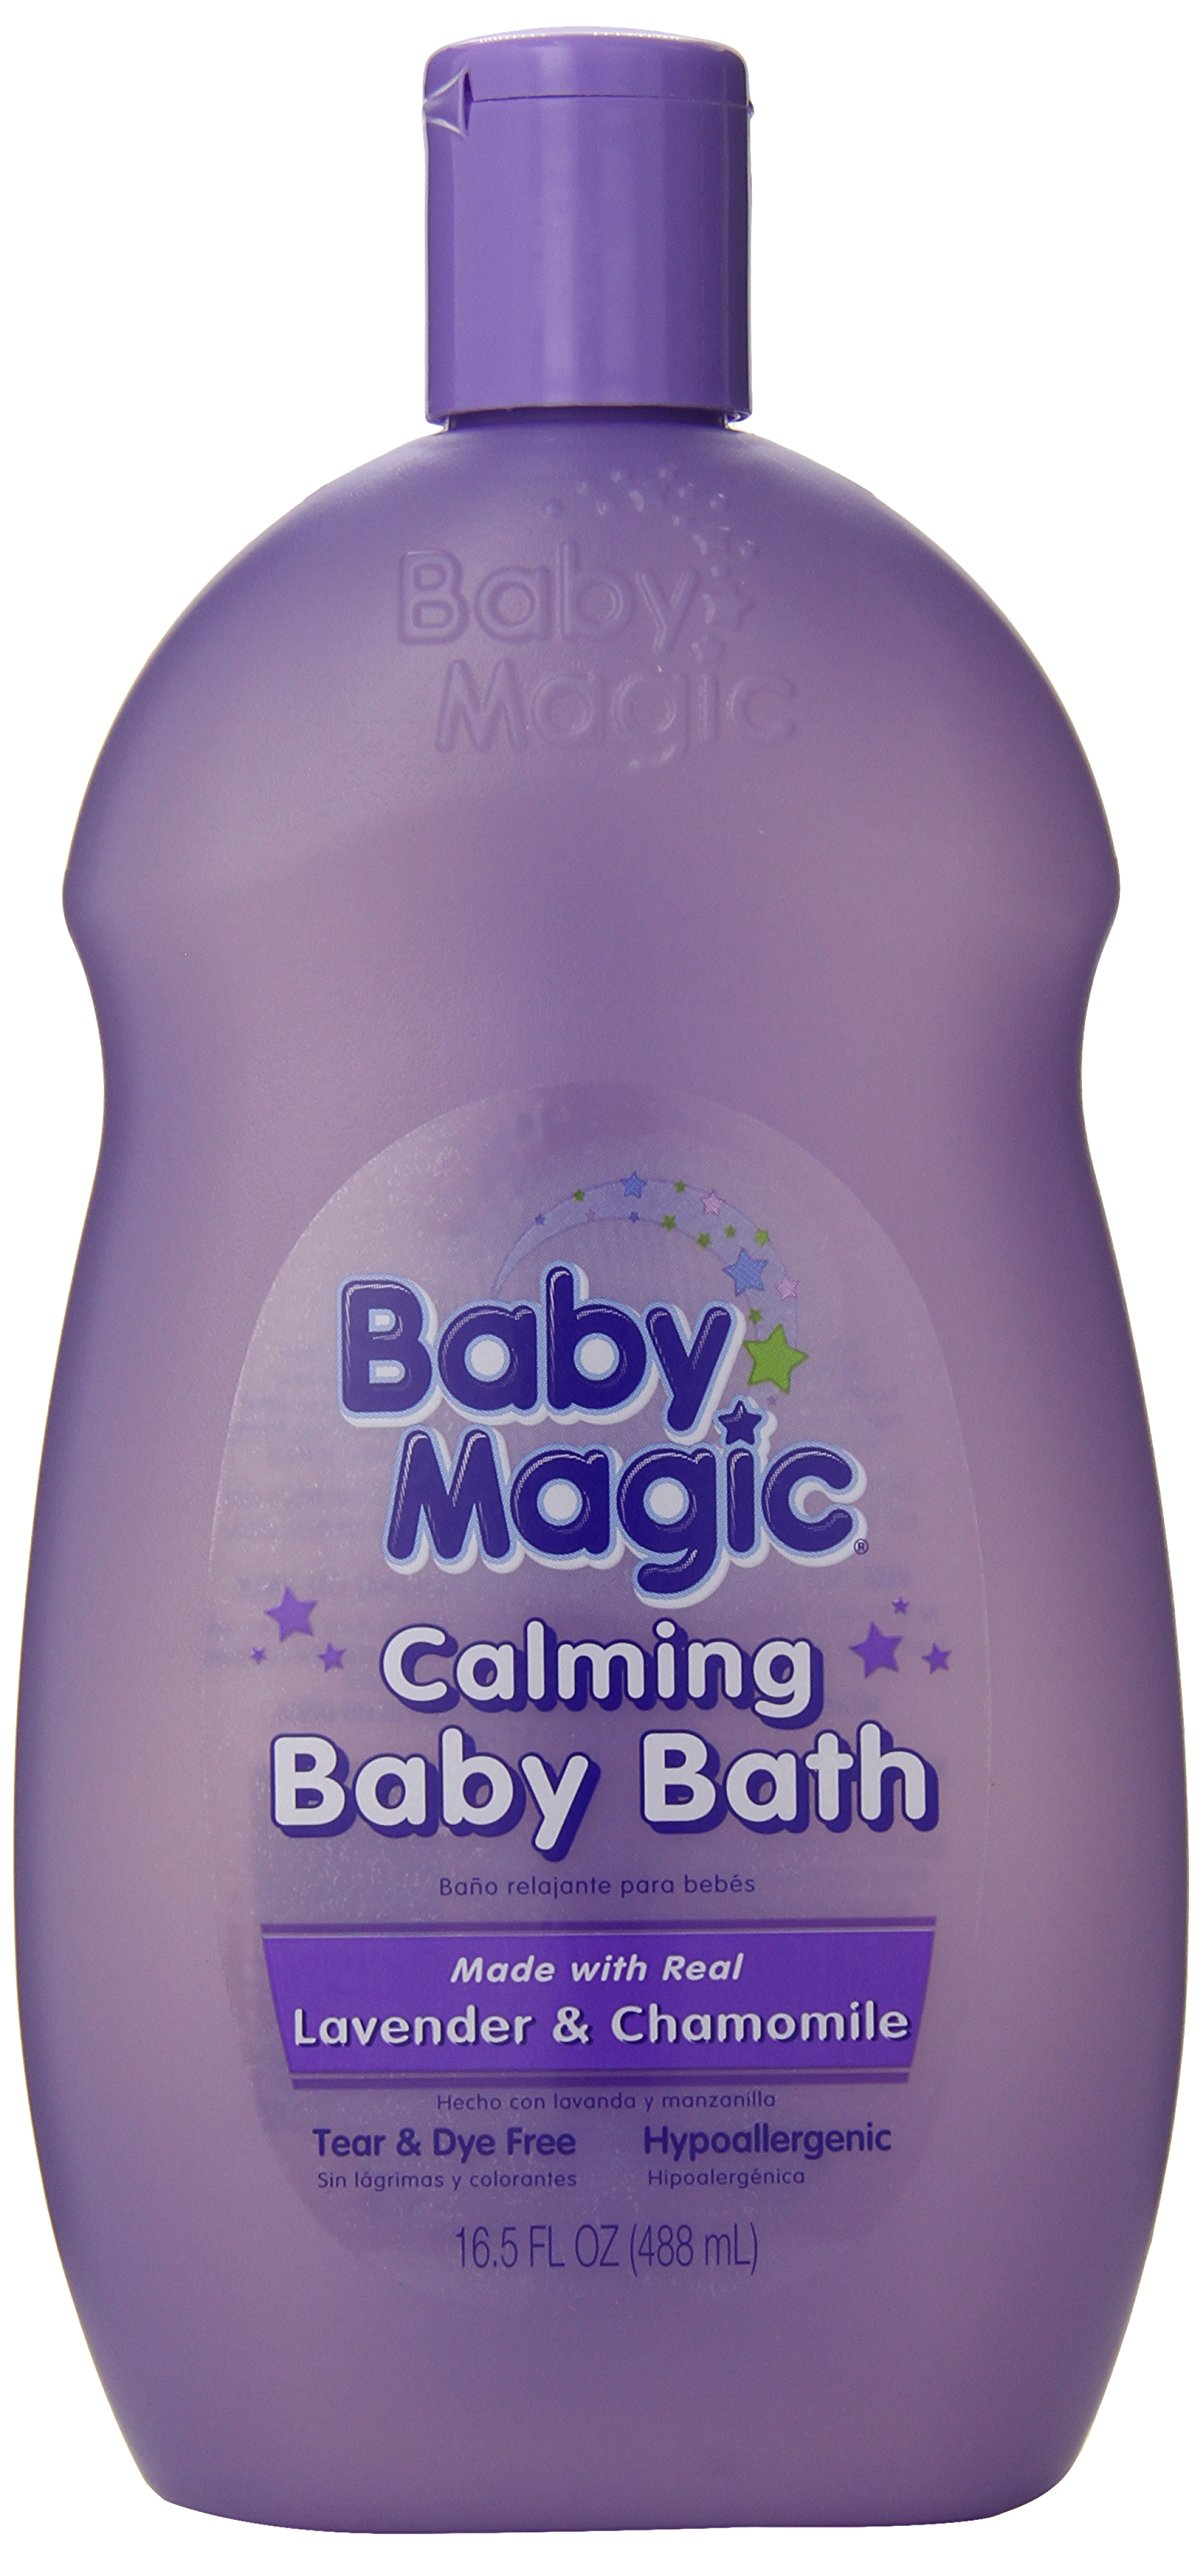 Baby Magic Calming Baby Bath - Lavender & Chamomile: 16.5 OZ by Baby Magic